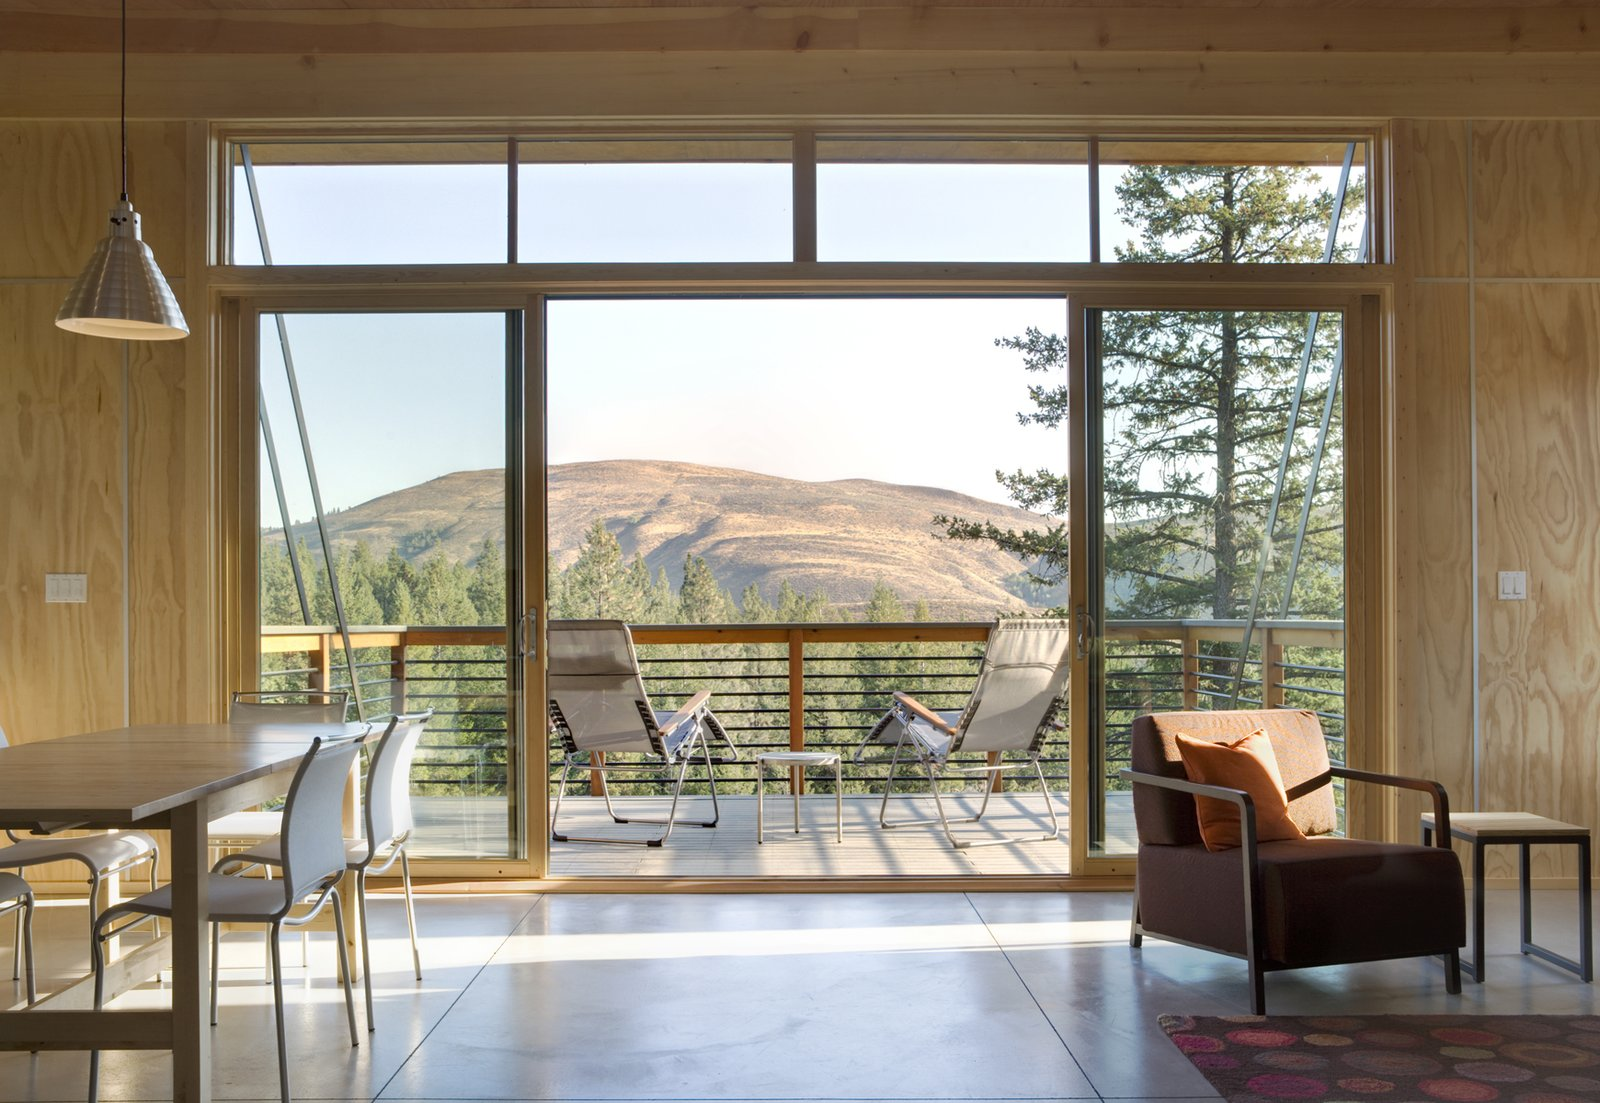 Supported by steel strips, the balcony extends outwards to meet the valley below. Fully-glazed sliding doors and a clerestory window provide a view.  Shining Examples of Clerestory Windows by Luke Hopping from Simple Cabin Embraces Its Mountain Setting